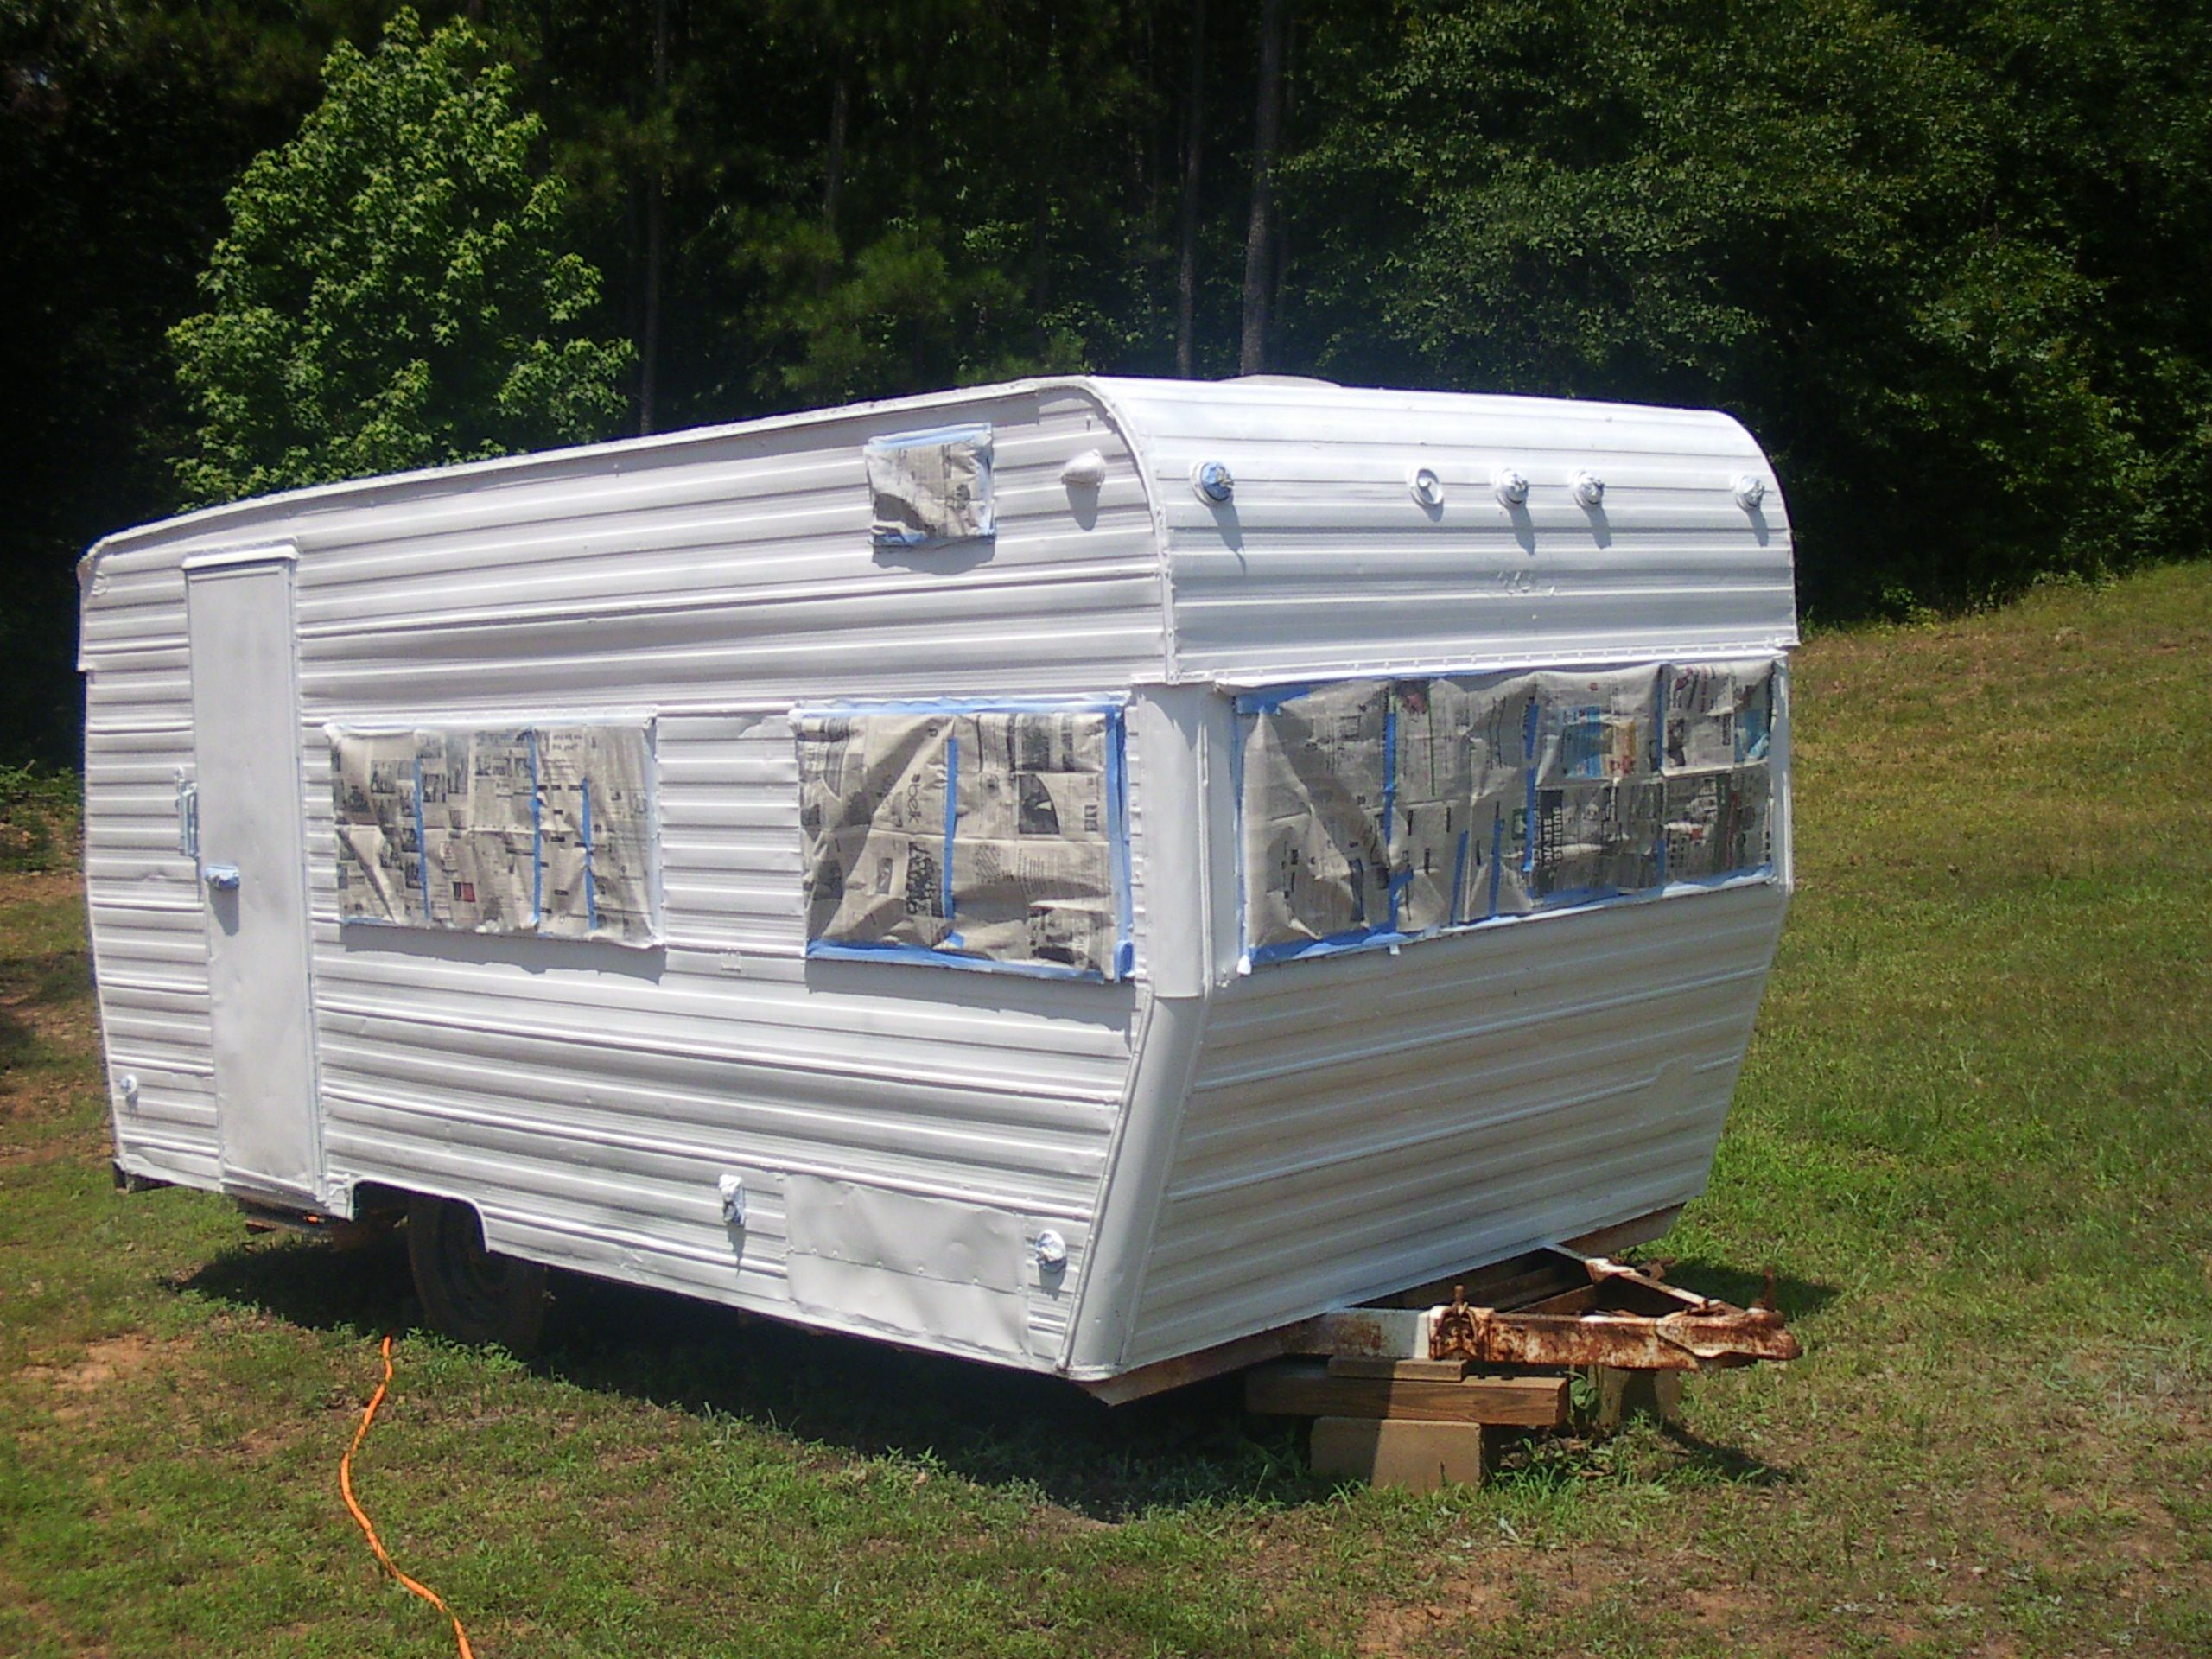 70s Terry Travel Trailer Remodel Old 1970s Total Inside And Out Gutted Put Up New Paneling Outside Painted